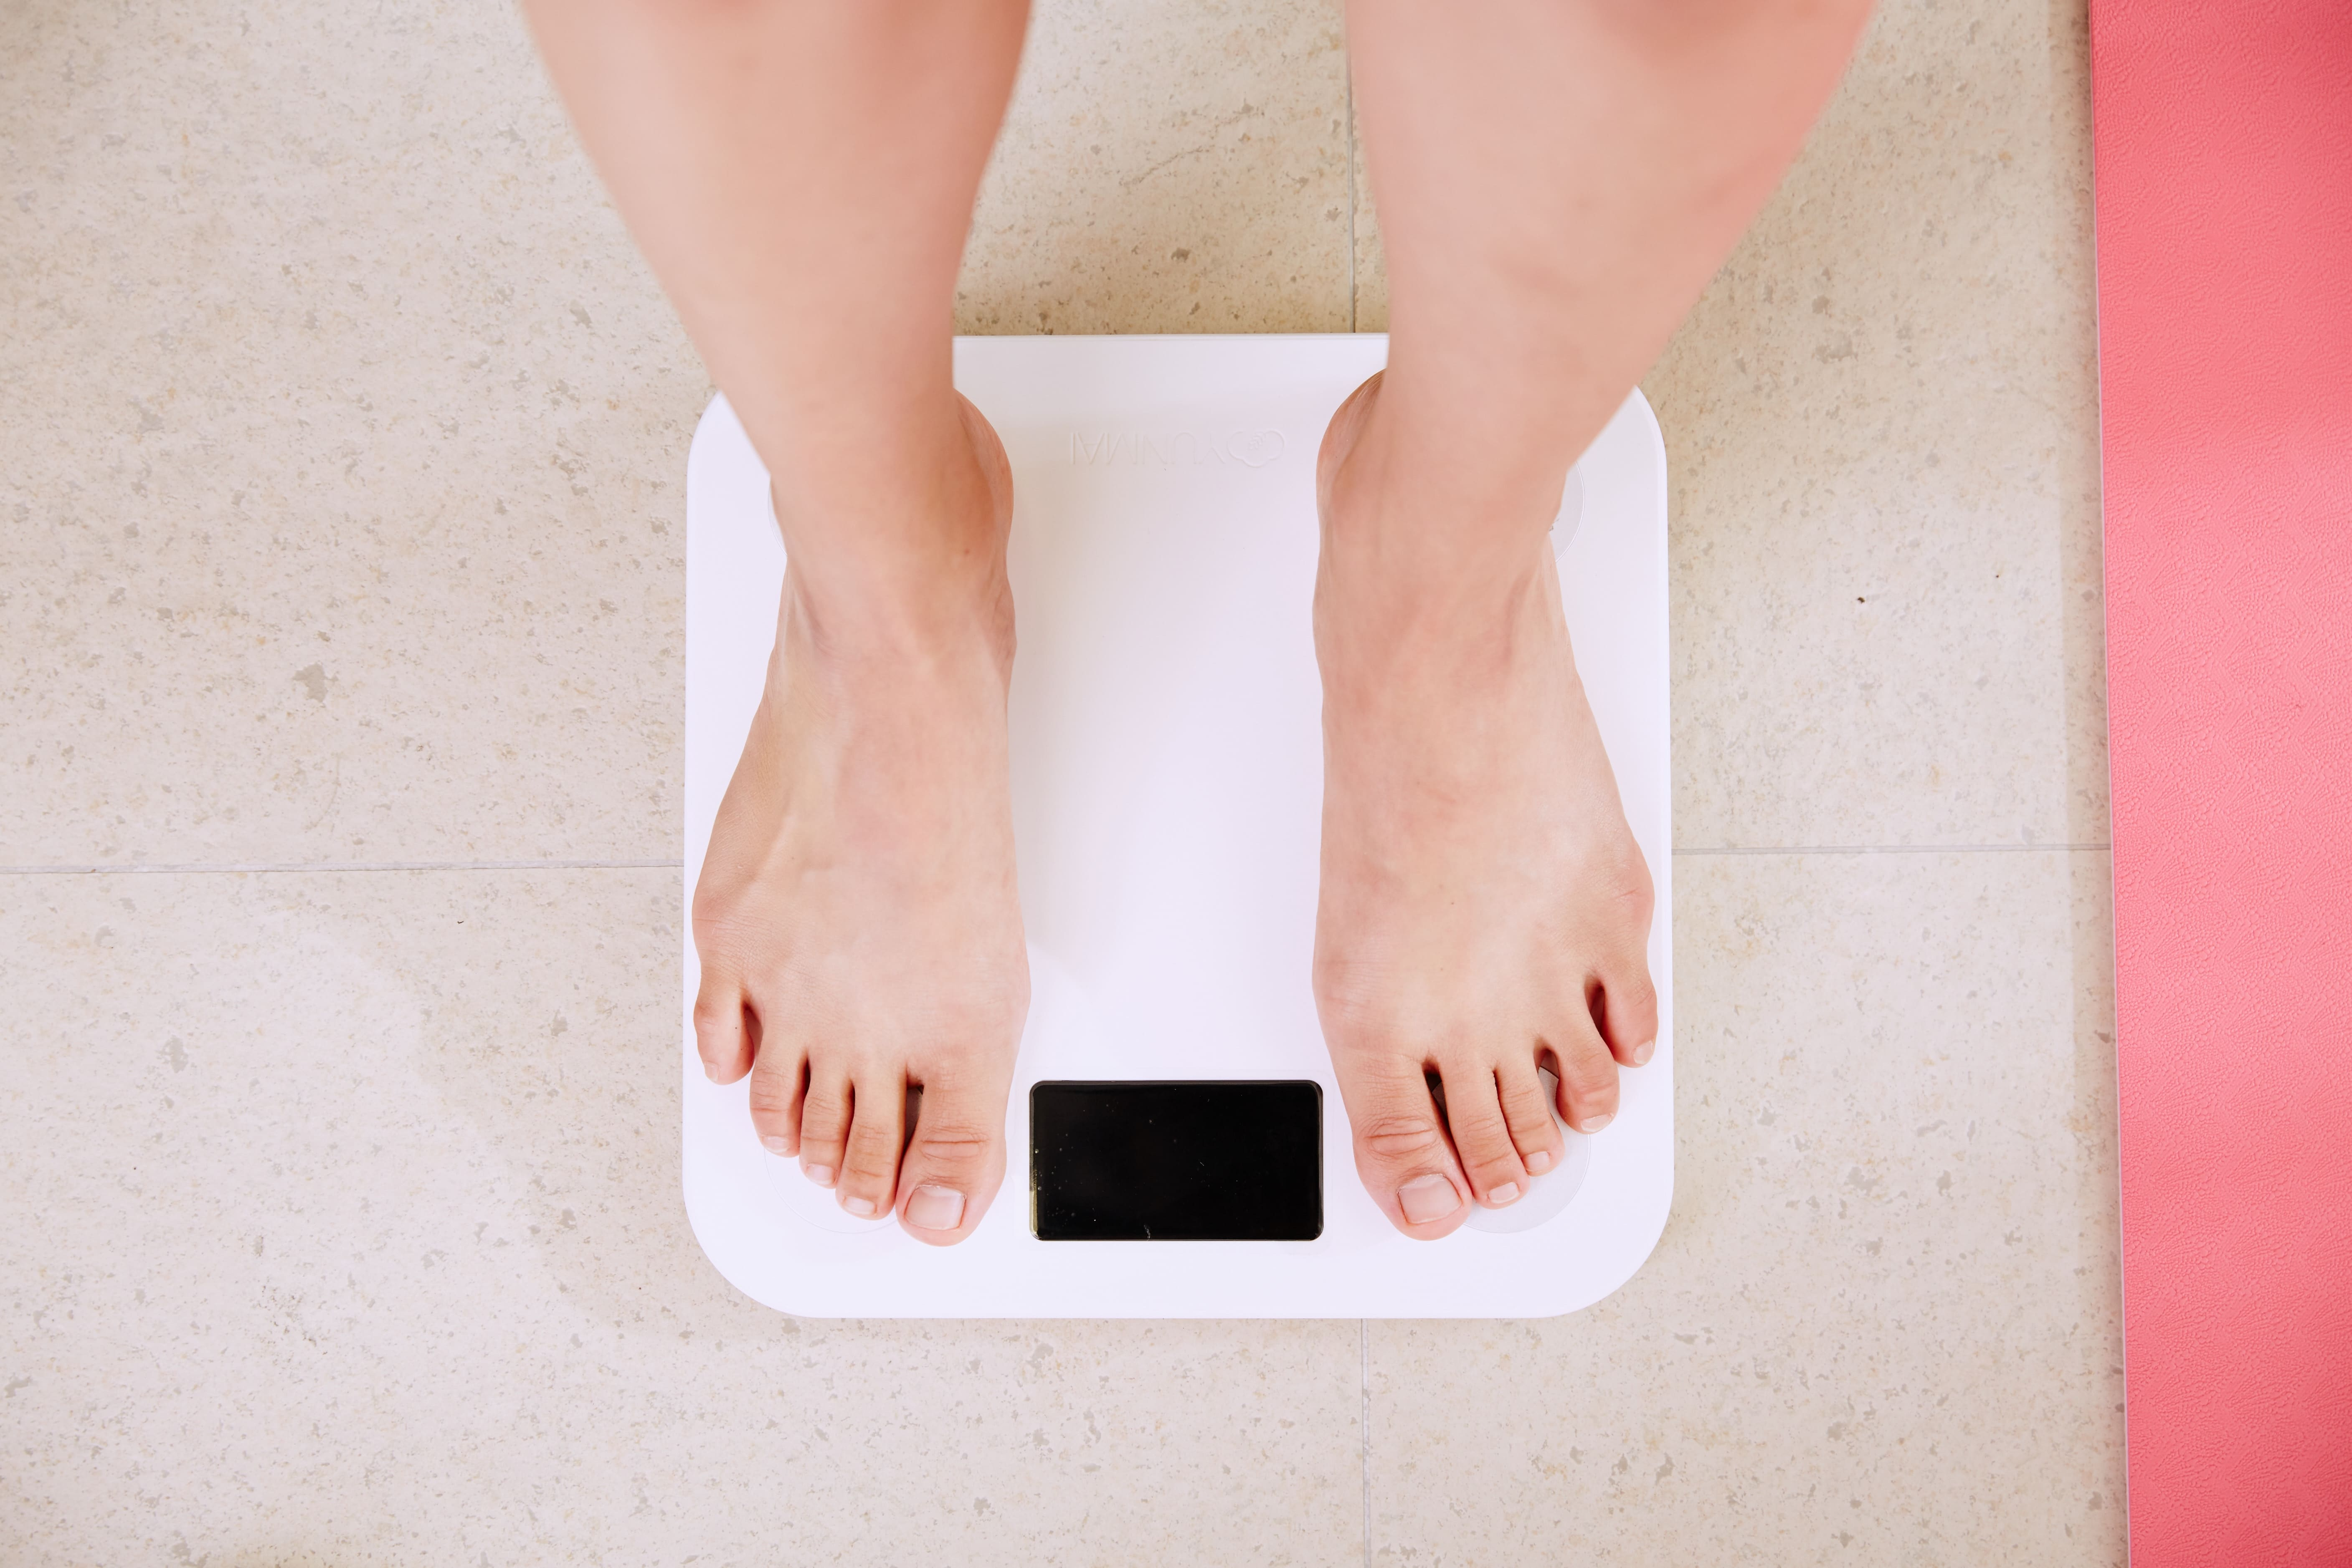 Person standing on white scales; image by I Yunmai, via Unsplash.com.